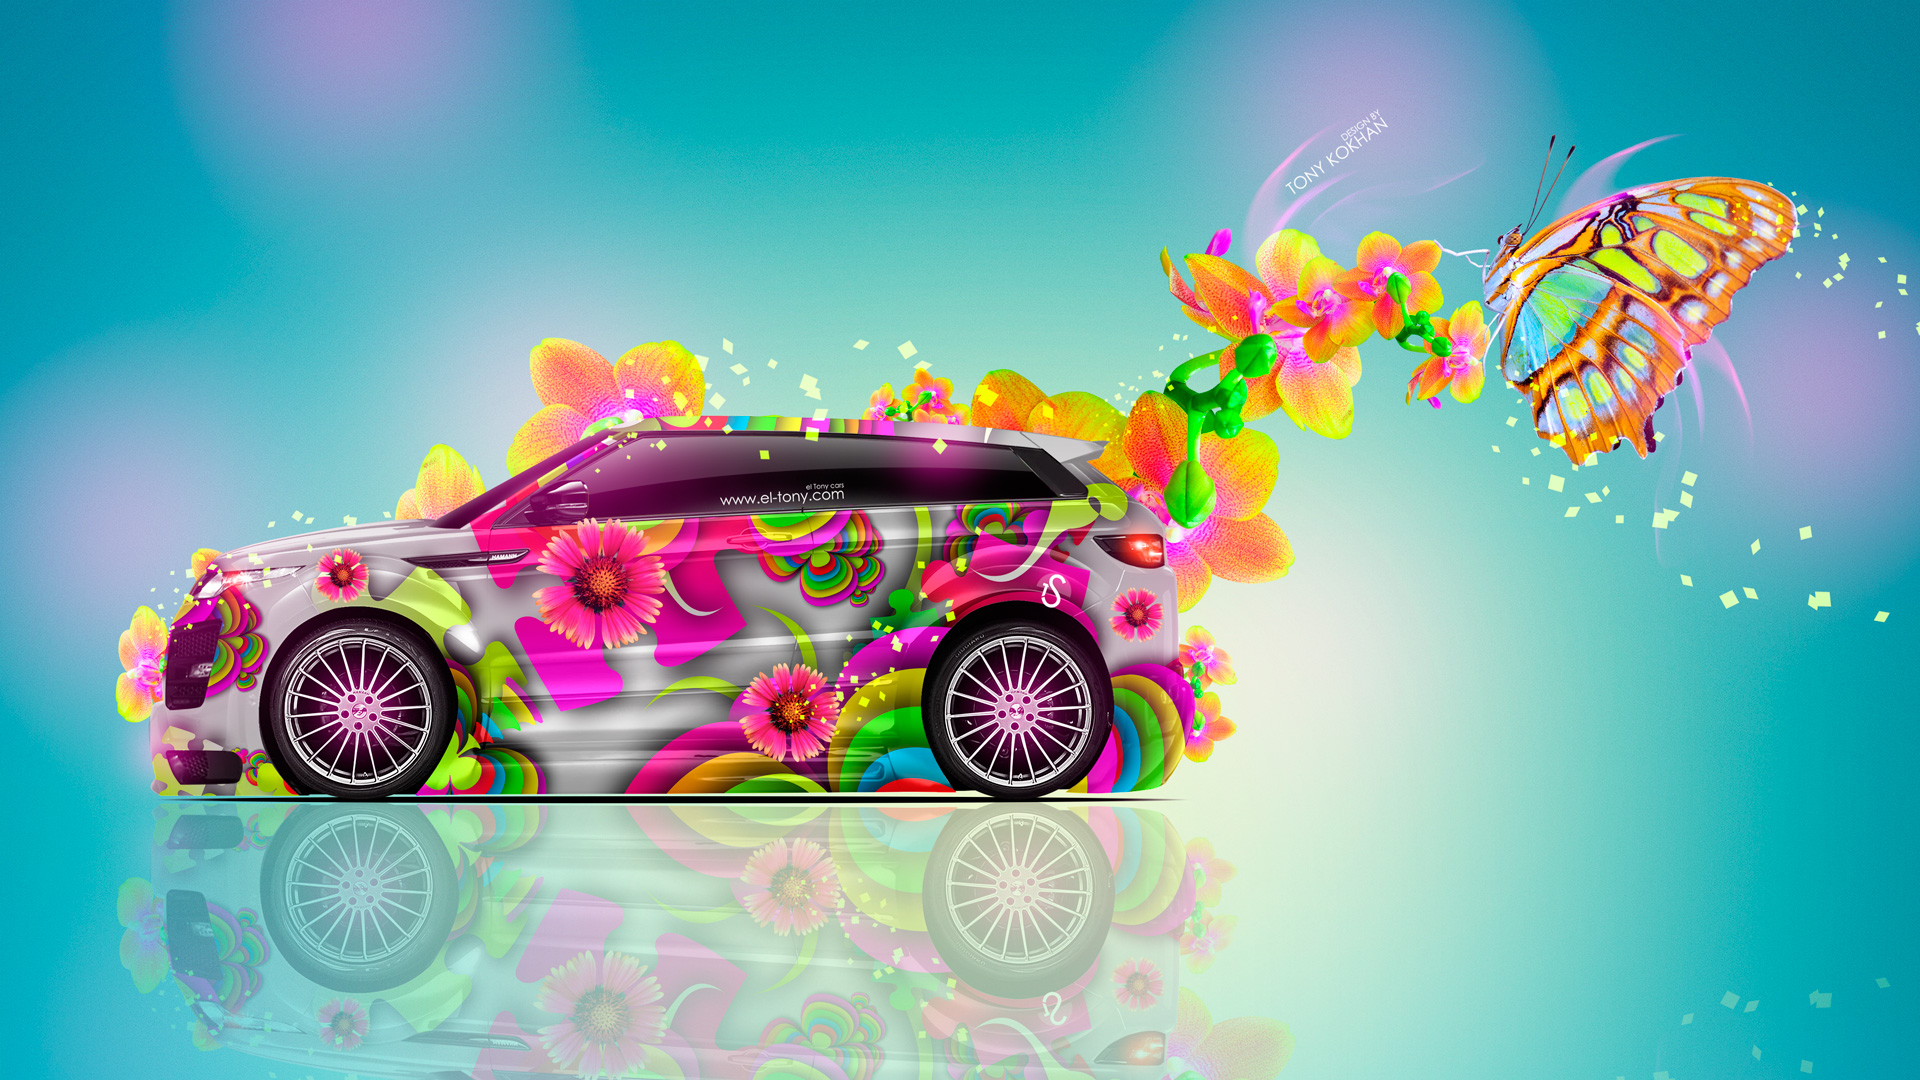 Merveilleux Land Rover Evoque Fantasy Butterfly Flowers Car 2014